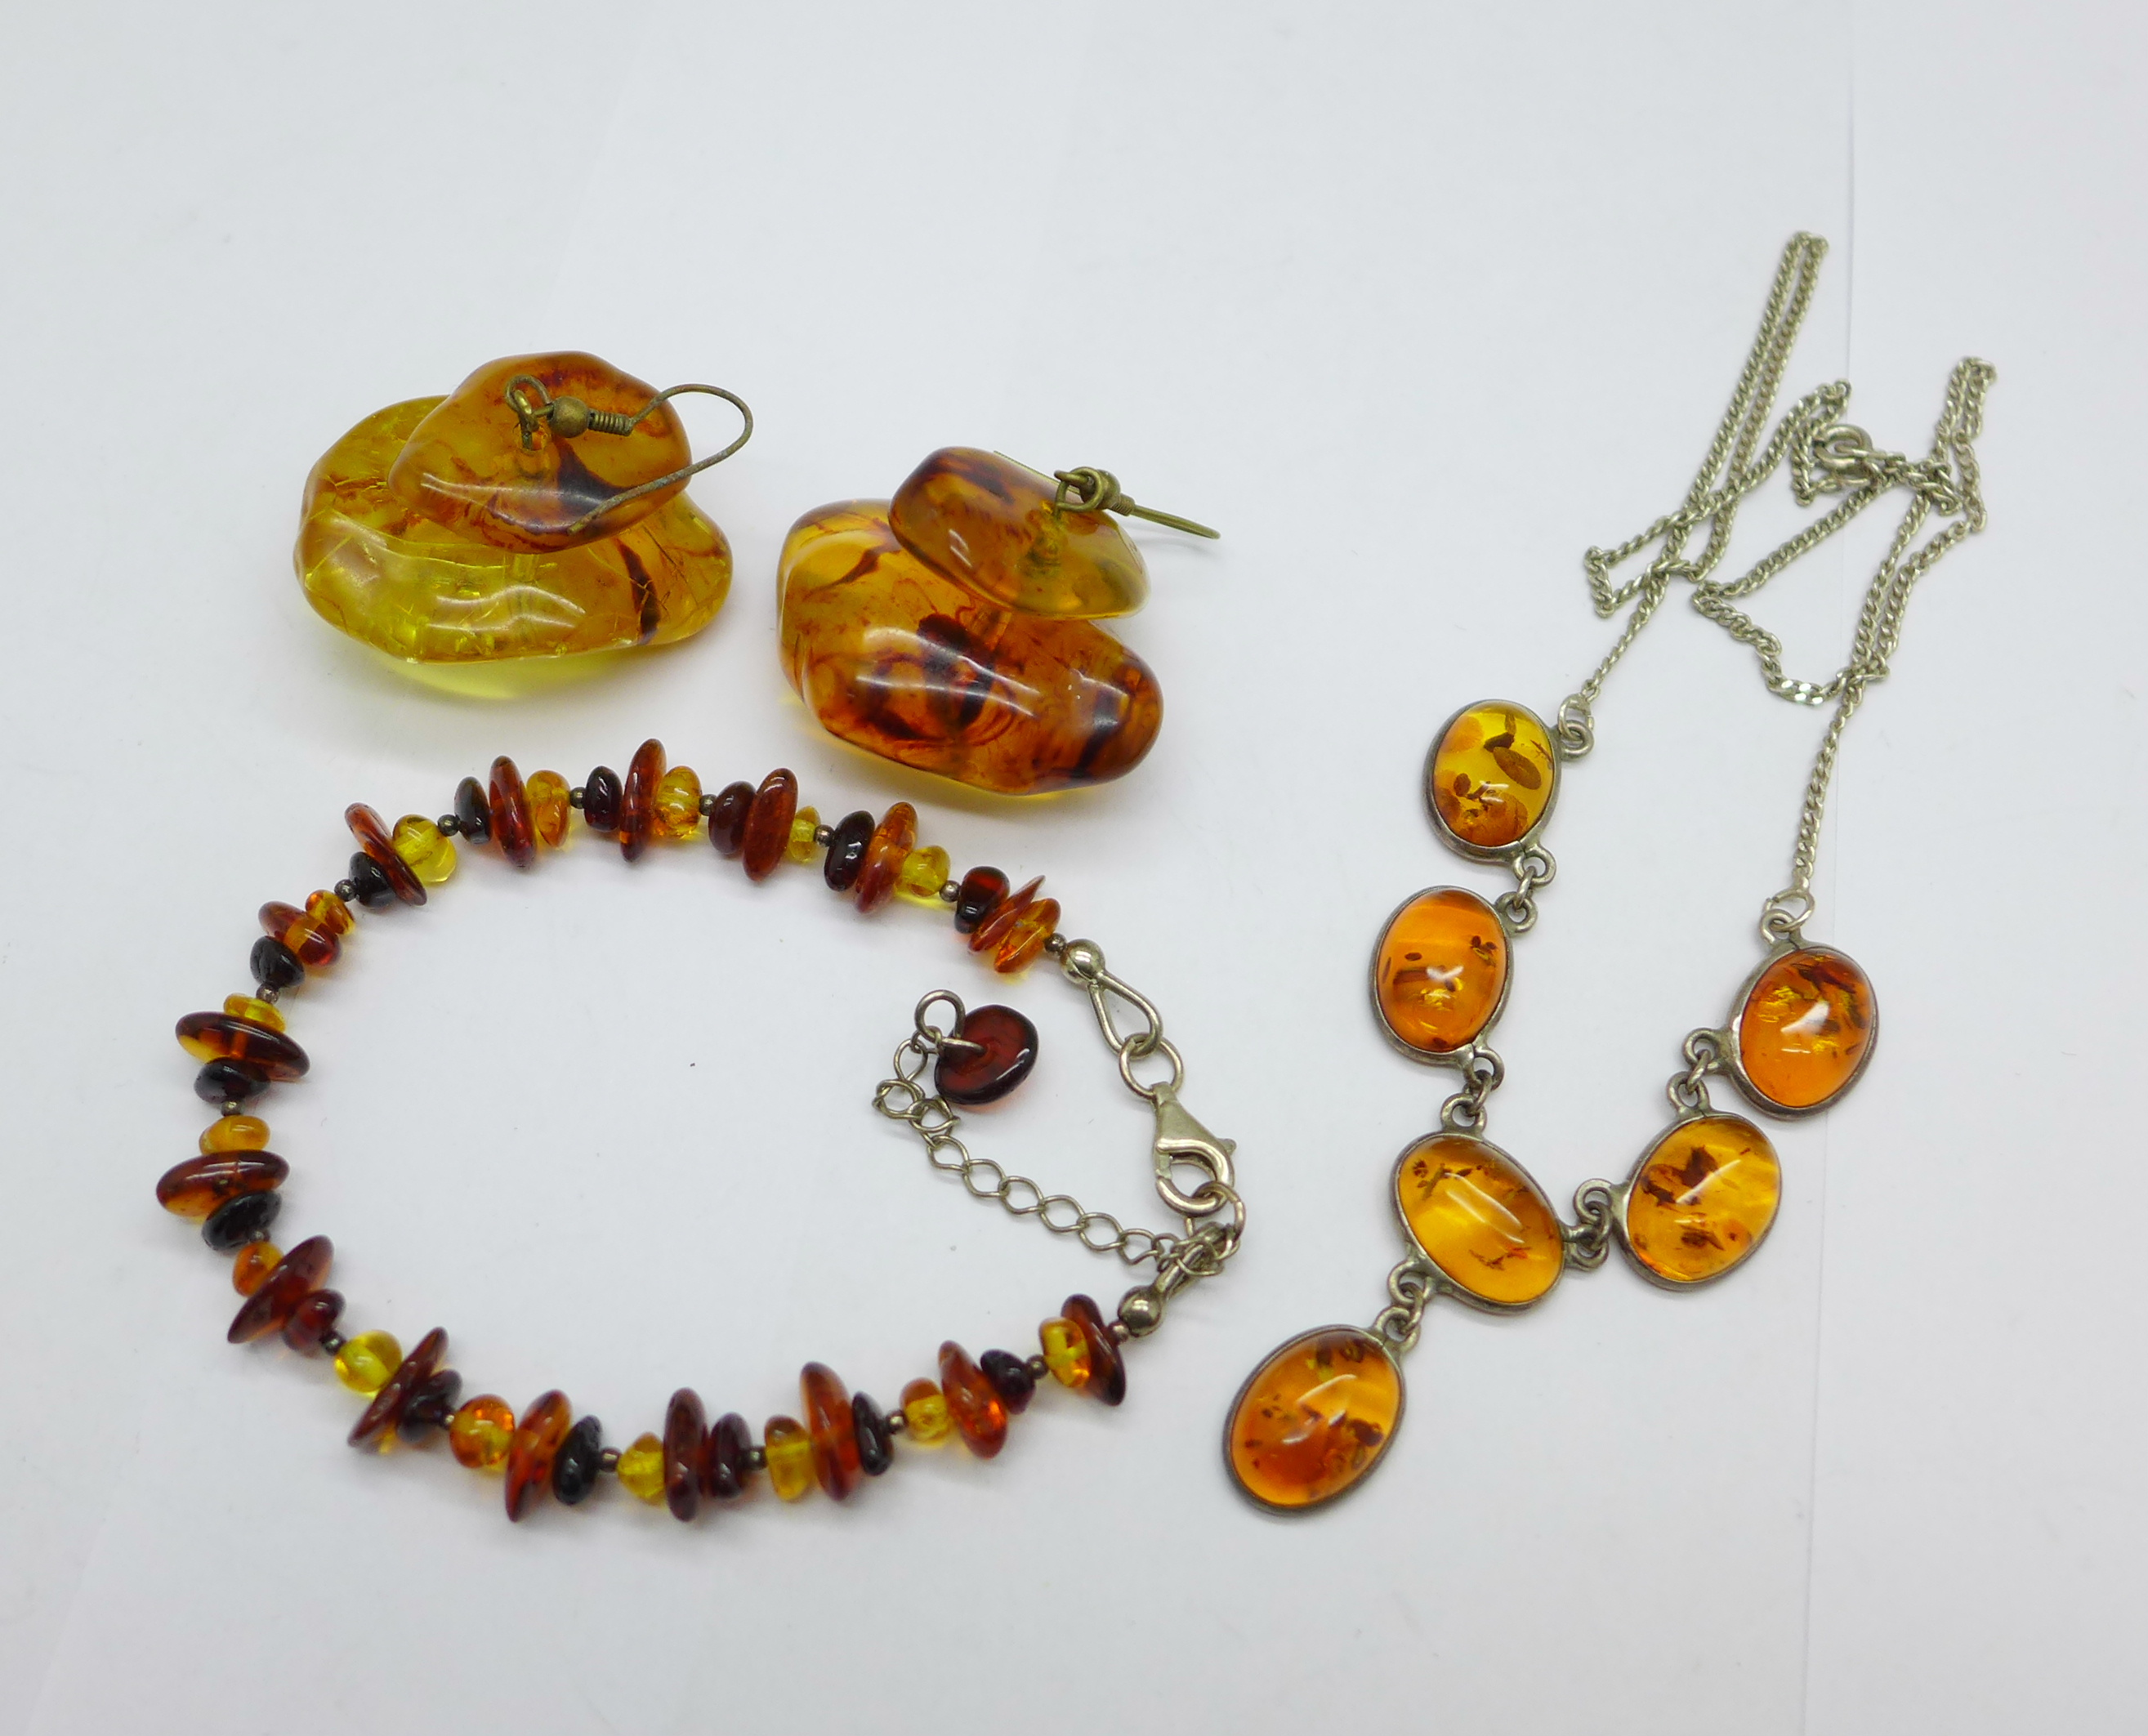 Amber coloured jewellery comprising a bracelet, earrings and a necklace